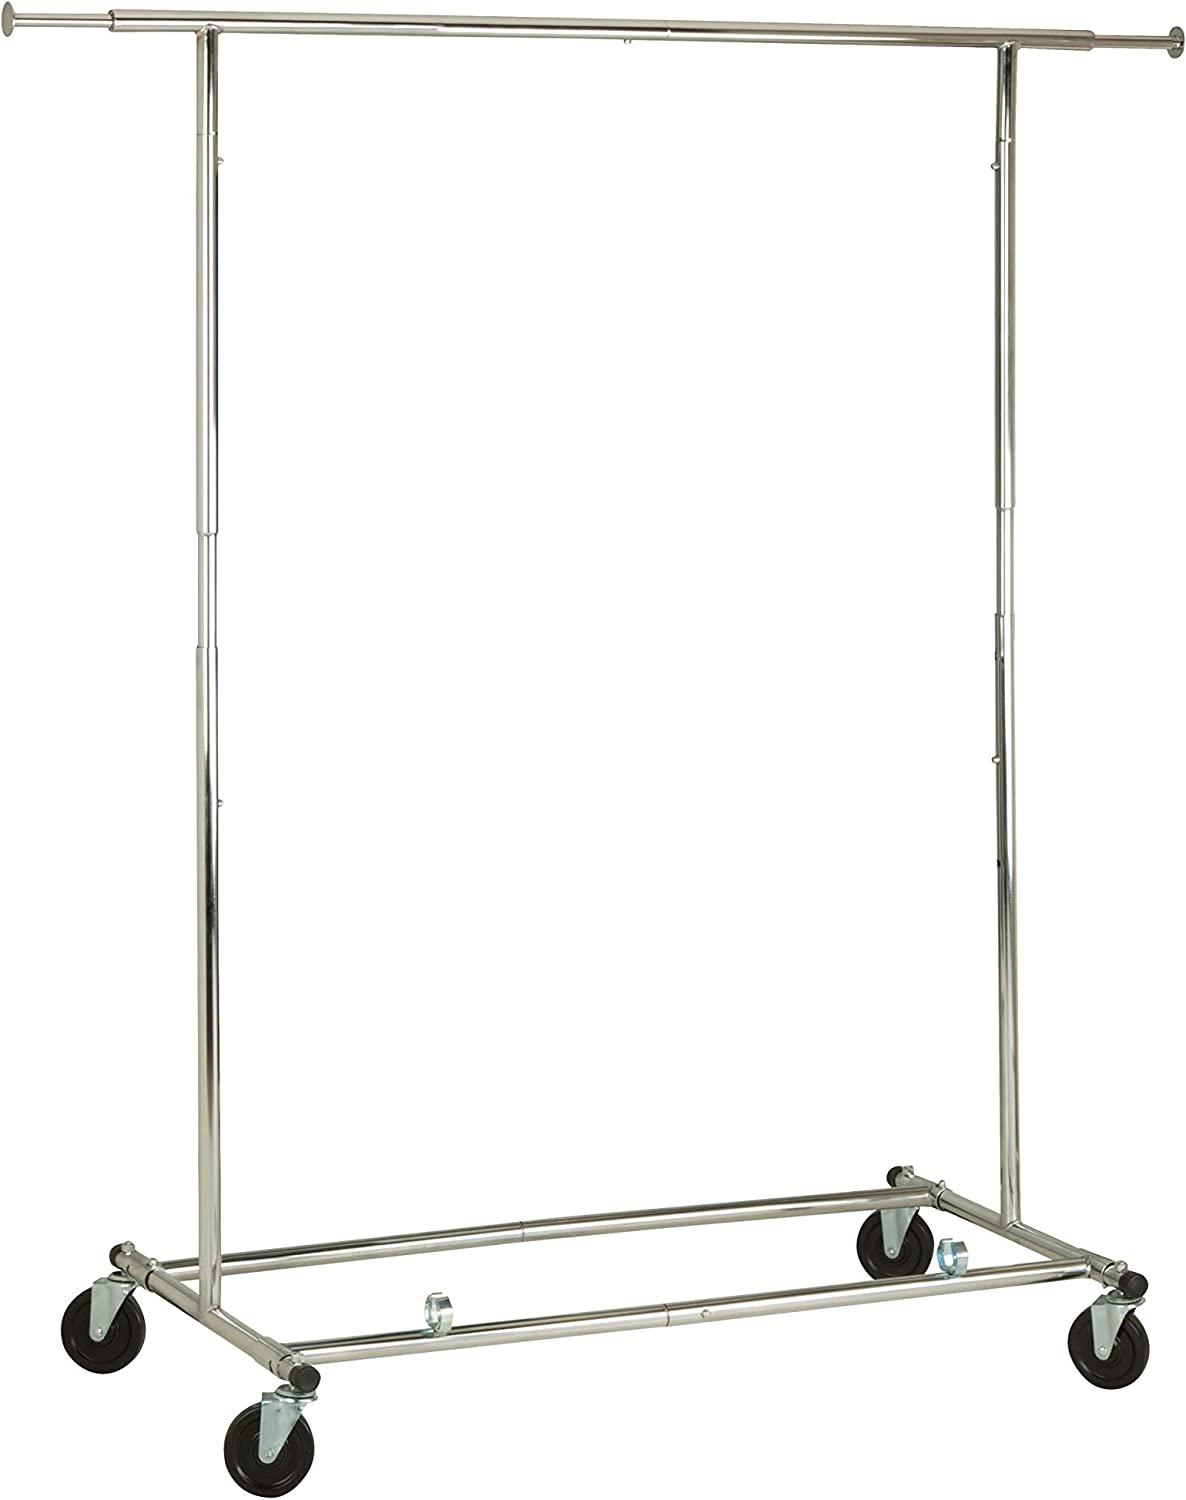 HEAVY DUTY GARMENT RAIL ACCESSORIES EXTENTIONS /& CENTRAL BARS ALL SIZE AVAILABLE